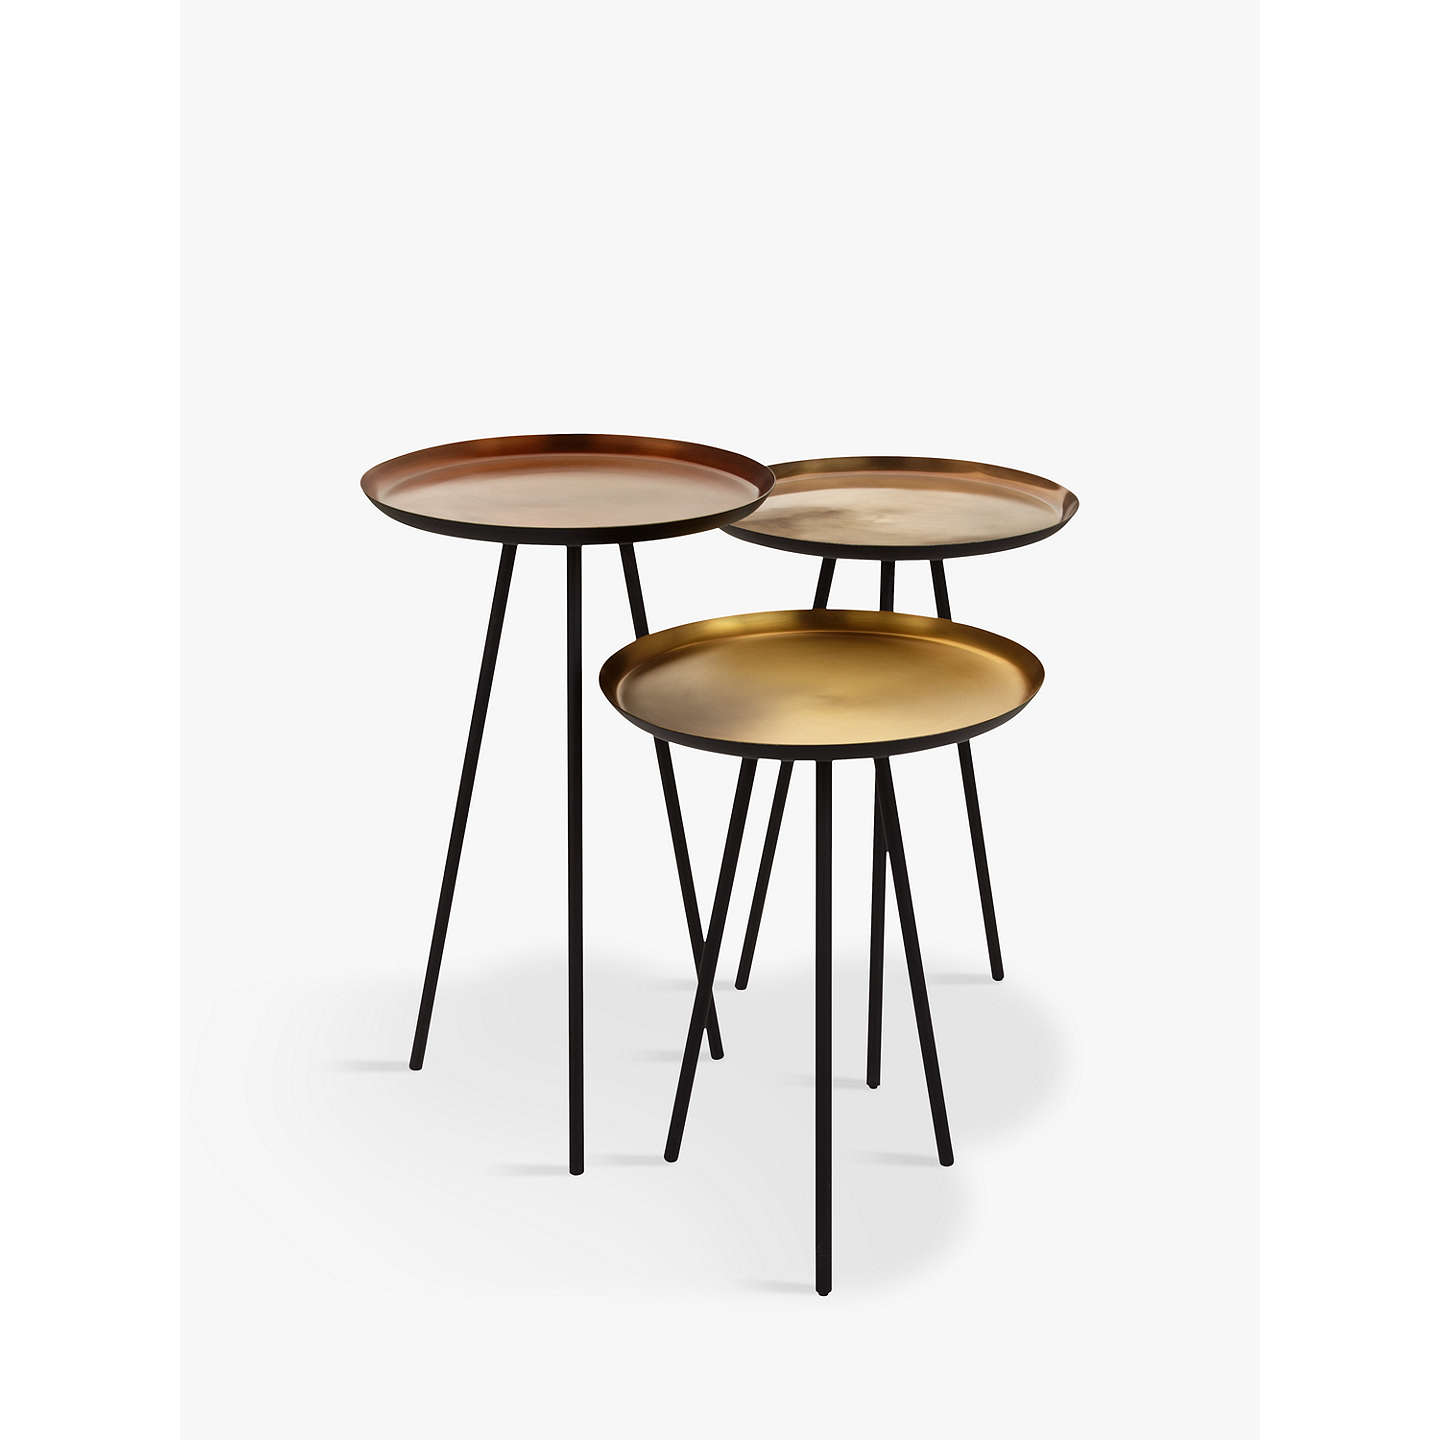 Genial BuyContent By Terence Conran Accents Round Side Tables, Set Of 3, Bronze  Online At ...